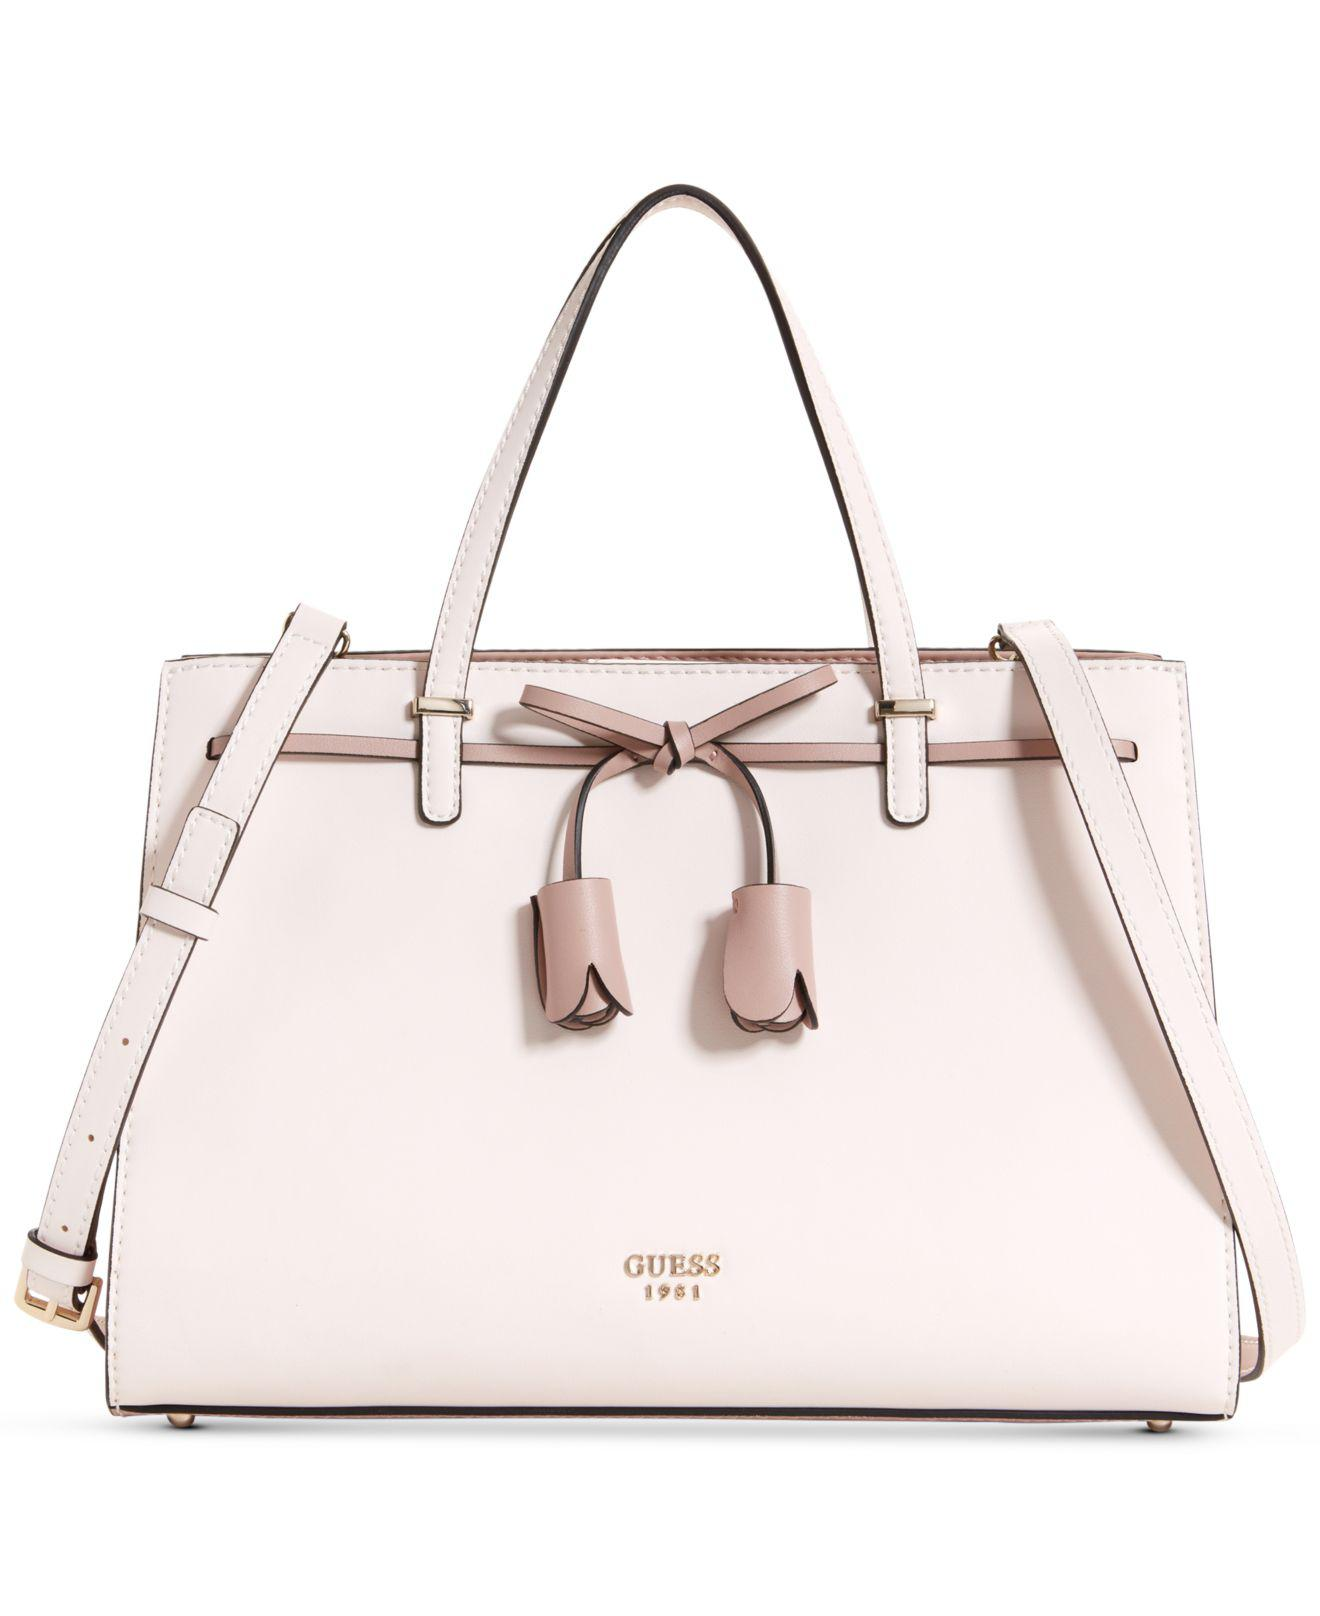 Lyst - Guess Leila Girlfriend Satchel 03ca15c829cd8